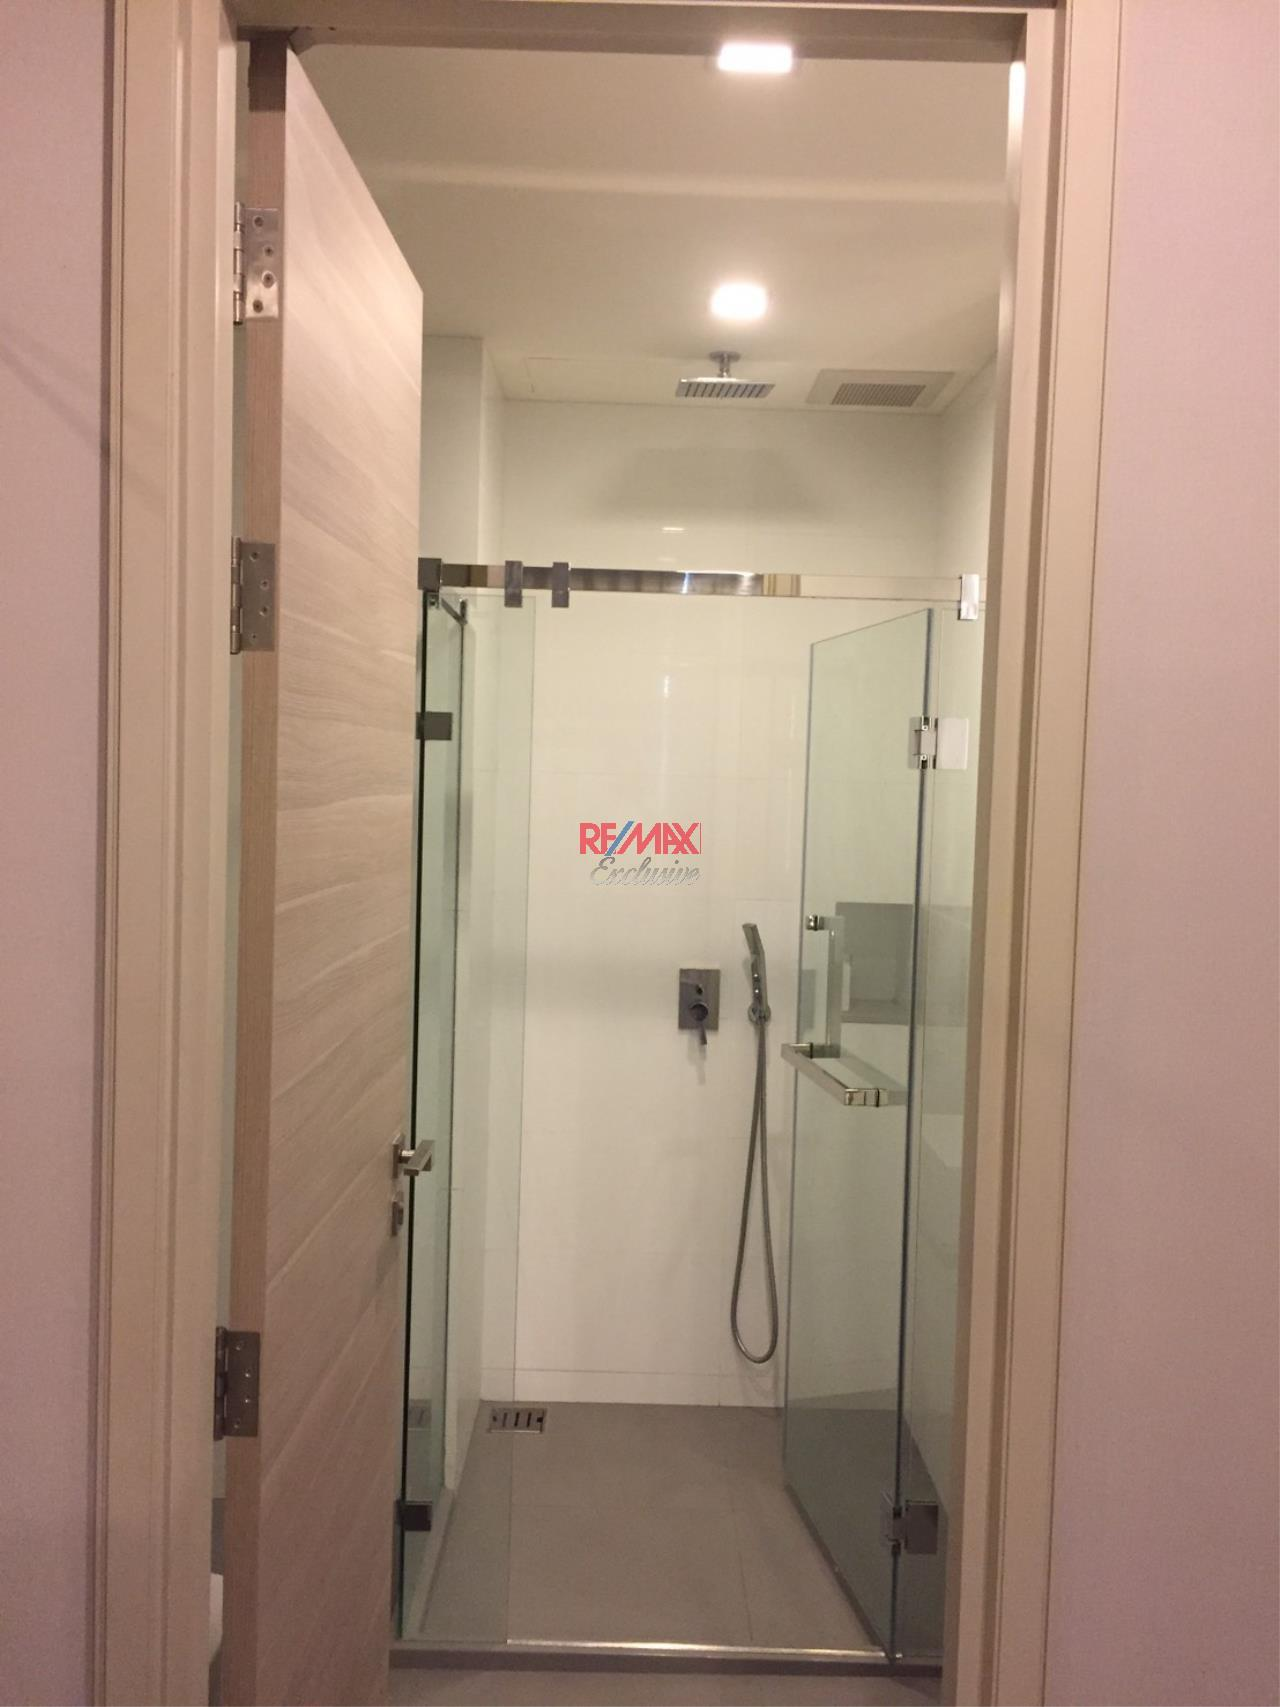 RE/MAX Exclusive Agency's The Room Sathorn Punn 1 Bedroom 50 Sqm., For Sale 9,200,000 THB 6